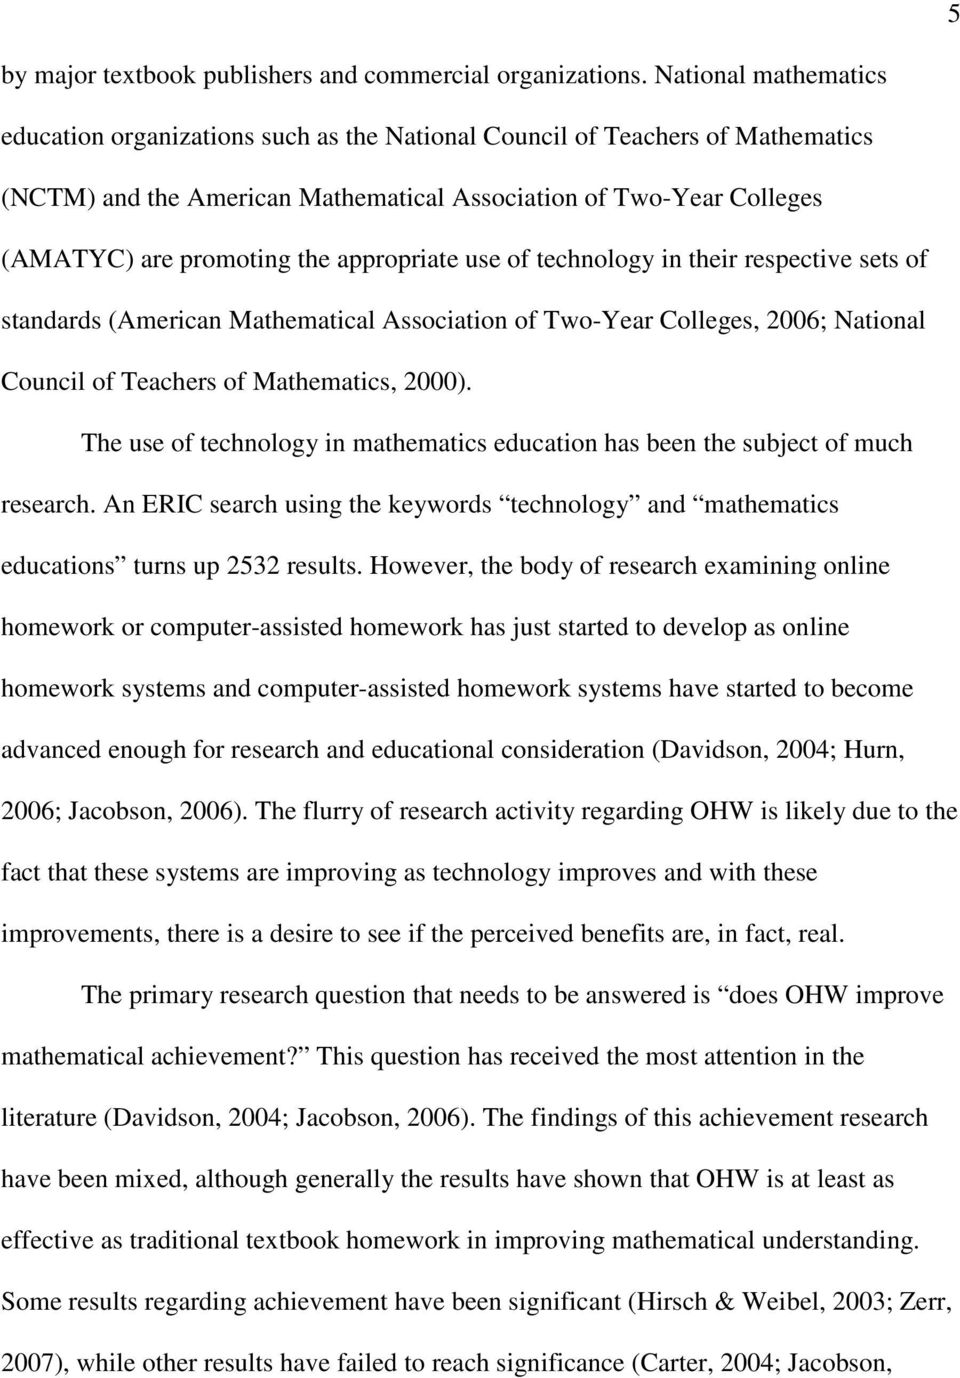 appropriate use of technology in their respective sets of standards (American Mathematical Association of Two-Year Colleges, 2006; National Council of Teachers of Mathematics, 2000).